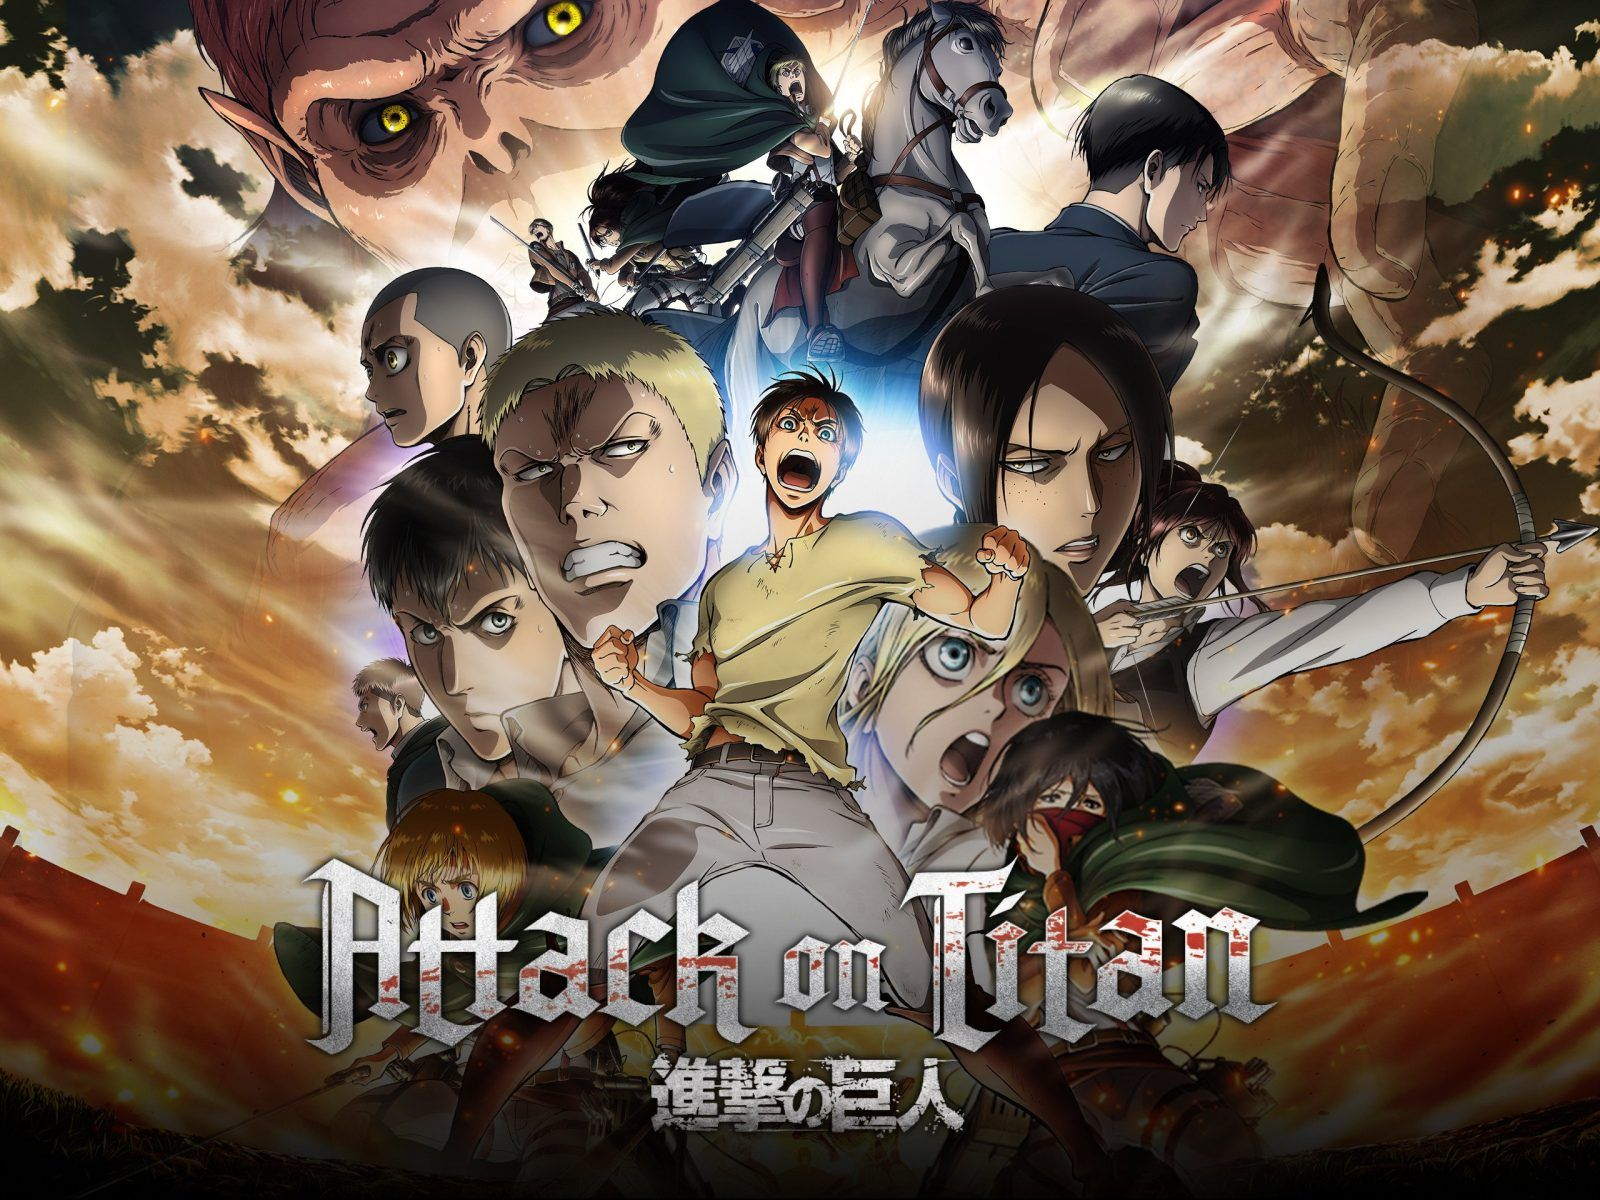 Attack on Titan Season 4: Trailer, Release Date, Plot, Cast and